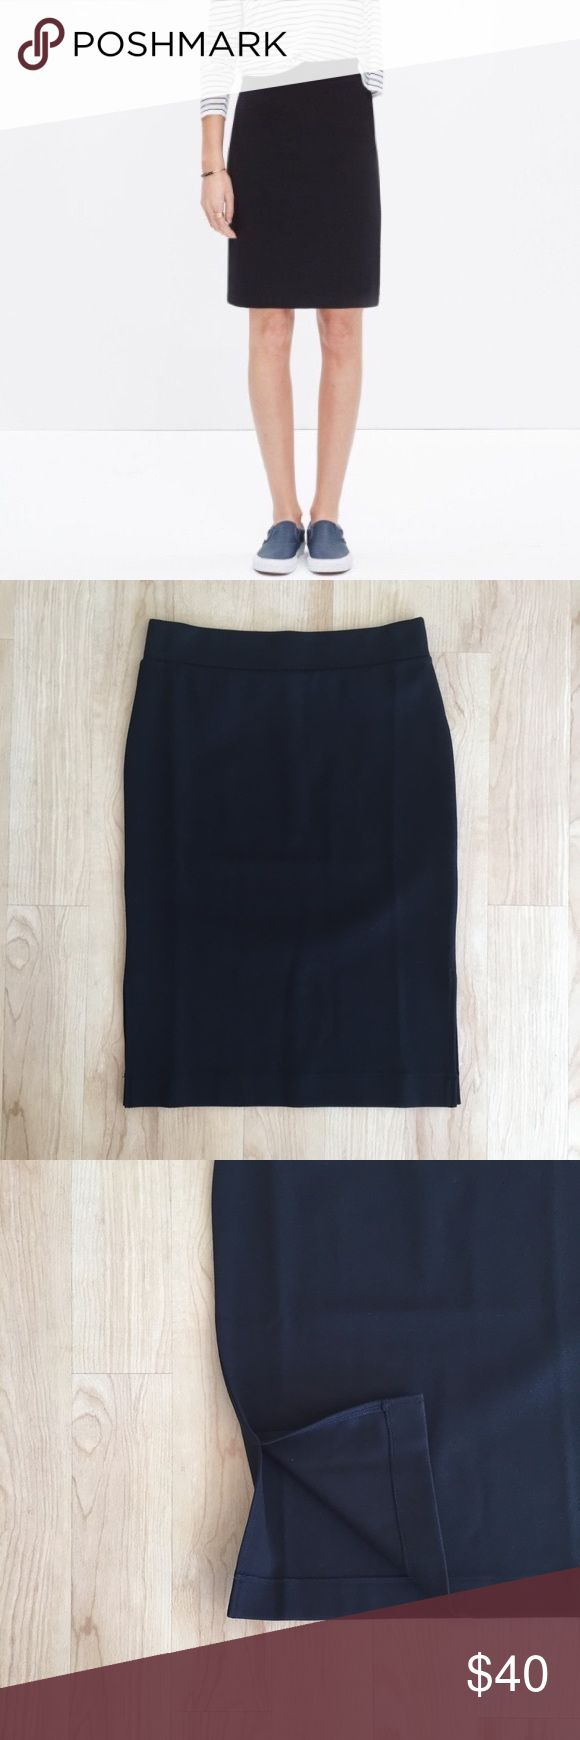 "NWT Column Side Slit Black Stretch Skirt Brand new with tags. No flaws. Black stretch skirt with 6.5"" side slits. Knee length. Size small - see pics for measurements. Madewell Skirts Pencil"